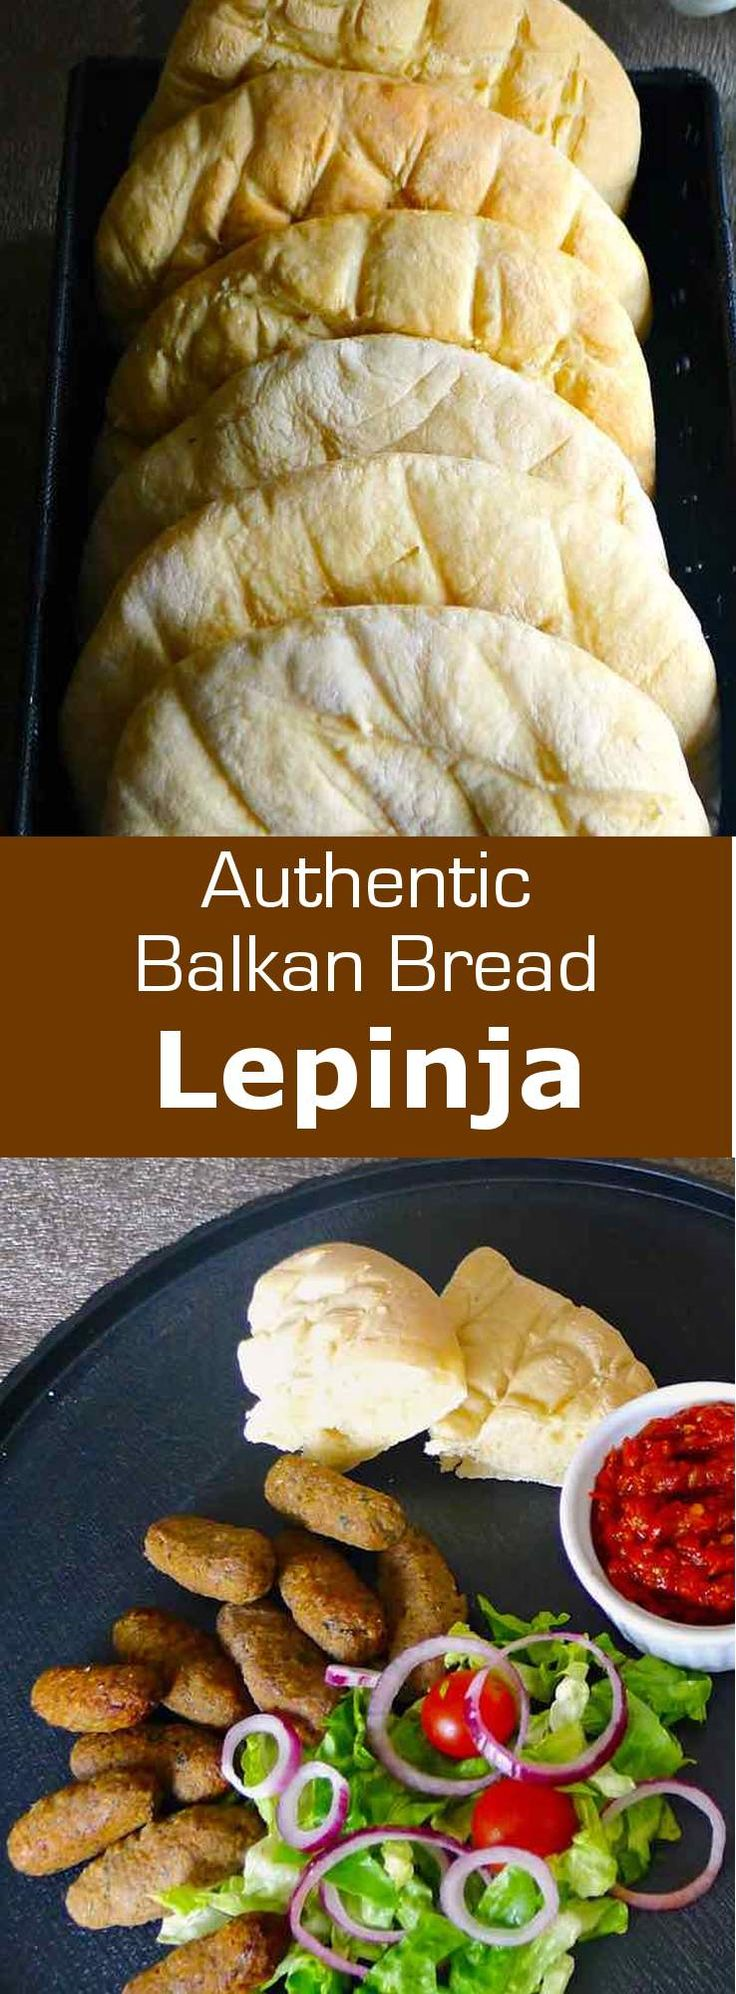 Lepinja bread, also called lepinje or somun in Bosnia and Herzegovina, is the daily bread of the Balkans. It is very soft and airy. #balkans #bread #196flavors